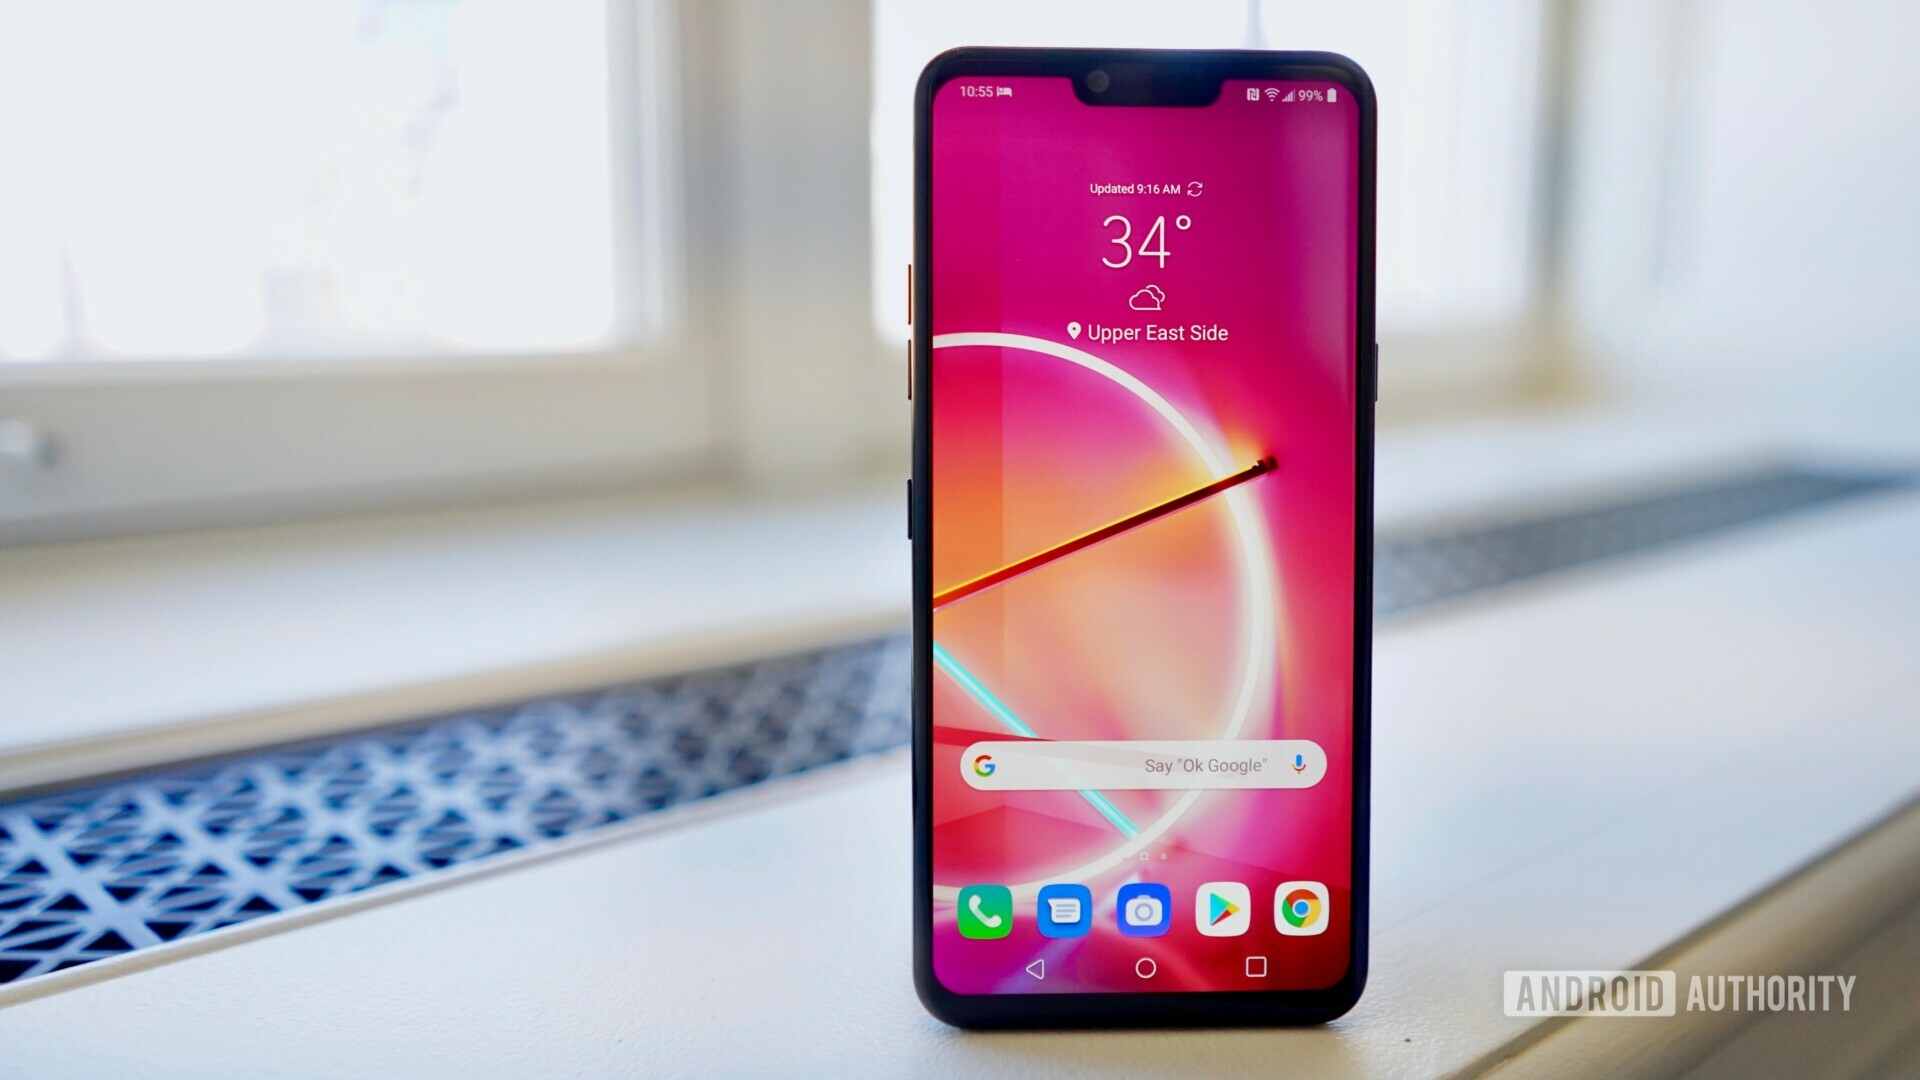 Here's how to factory reset your LG G8 ThinQ